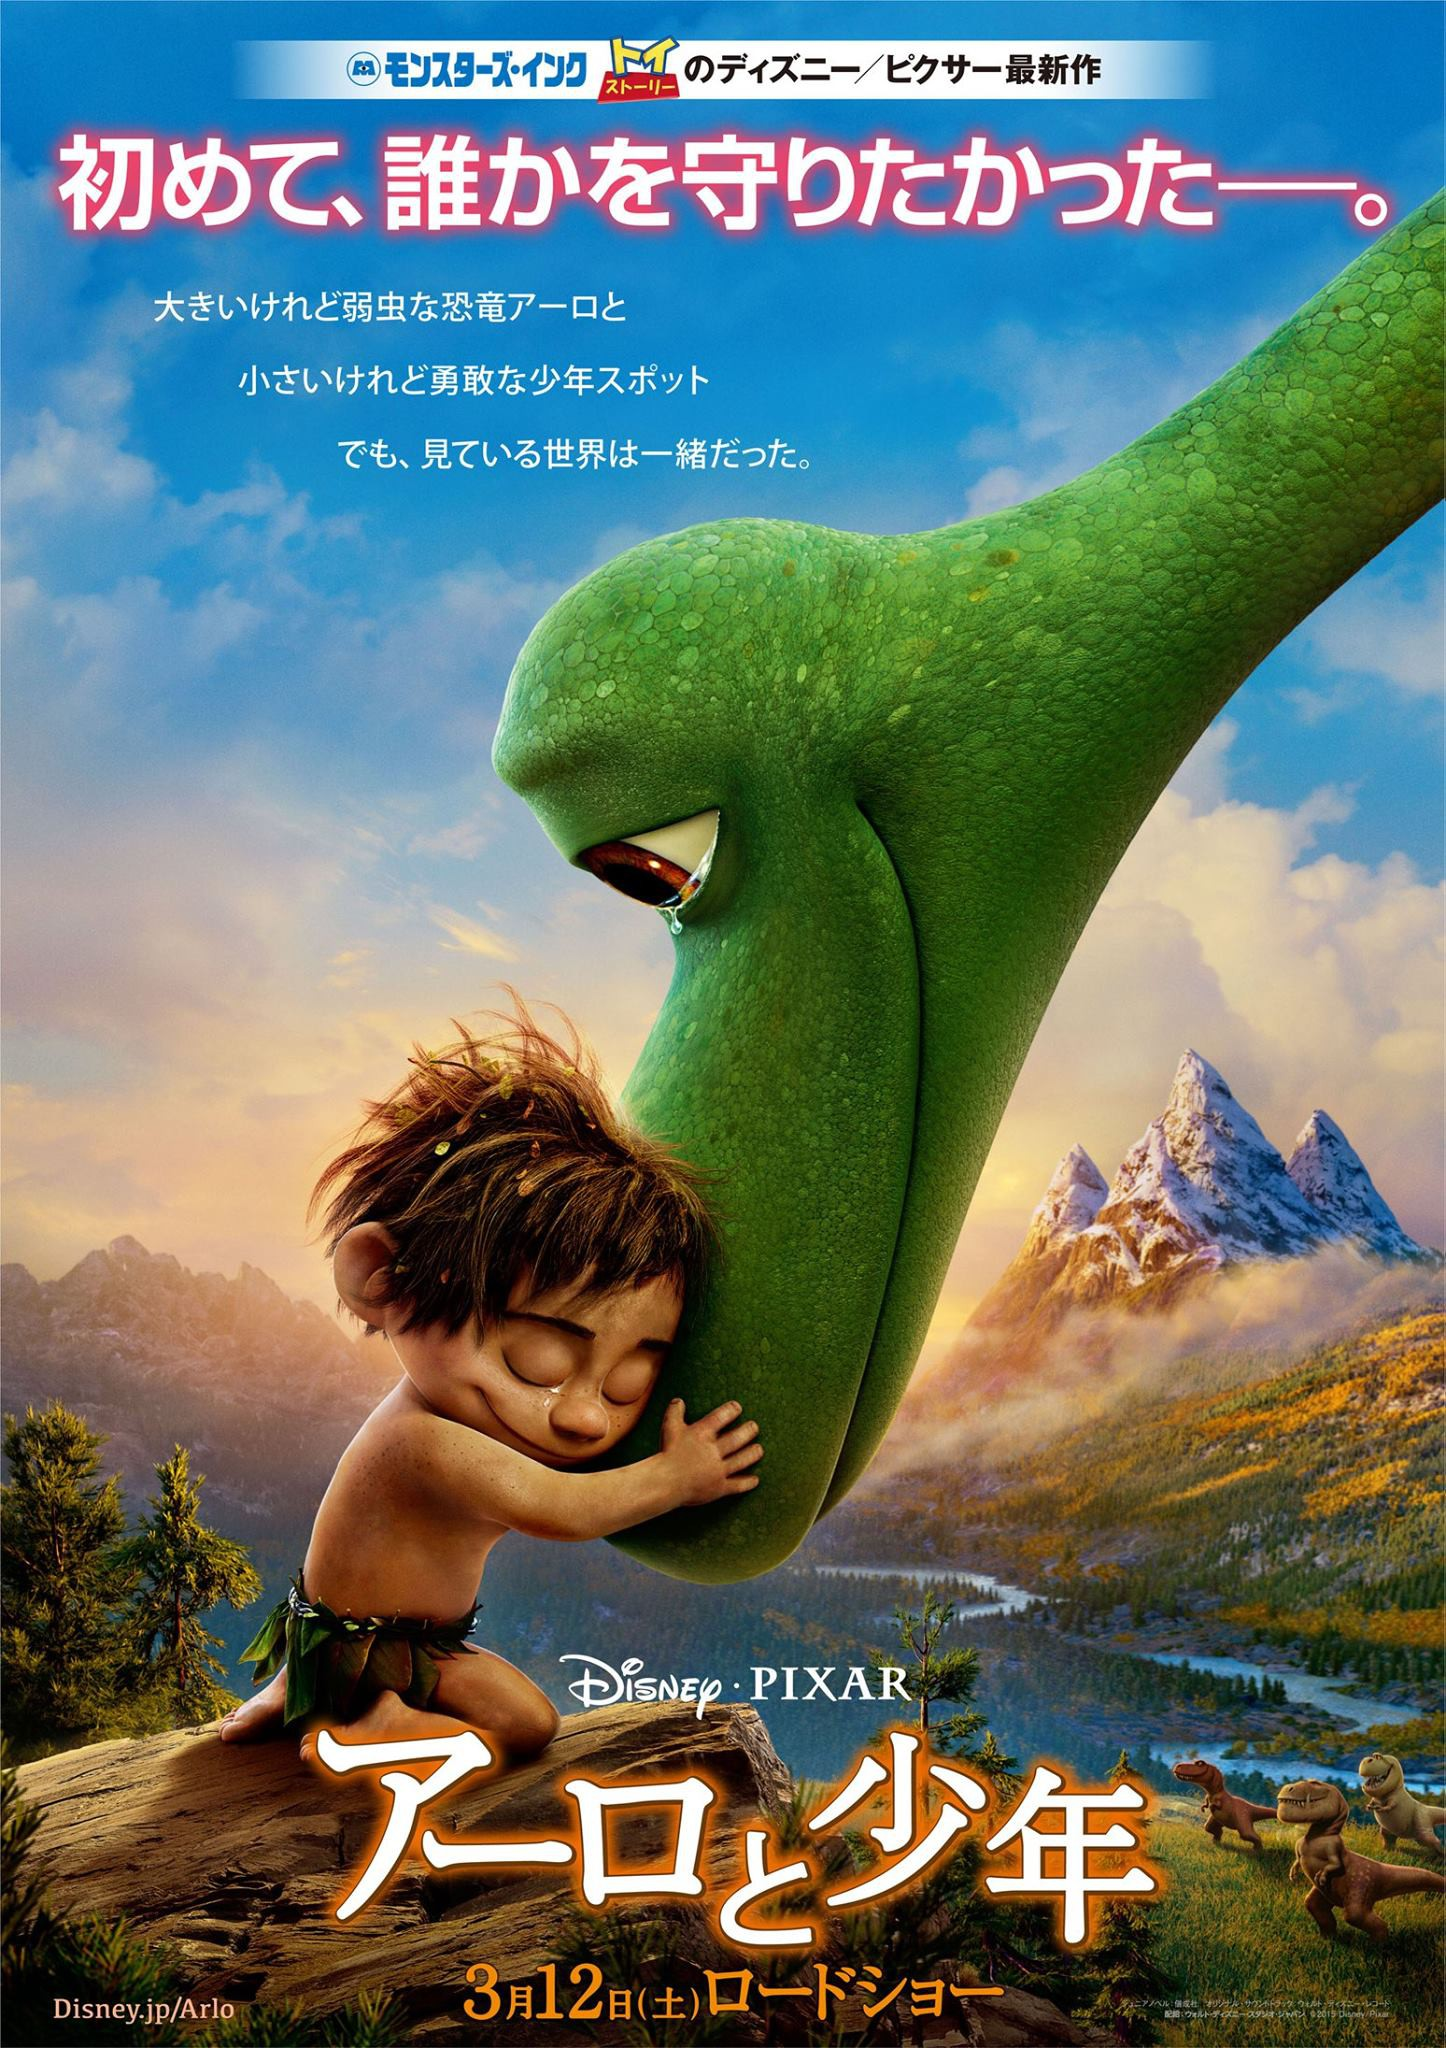 the good dinosaur - poster 11 (japan poster)